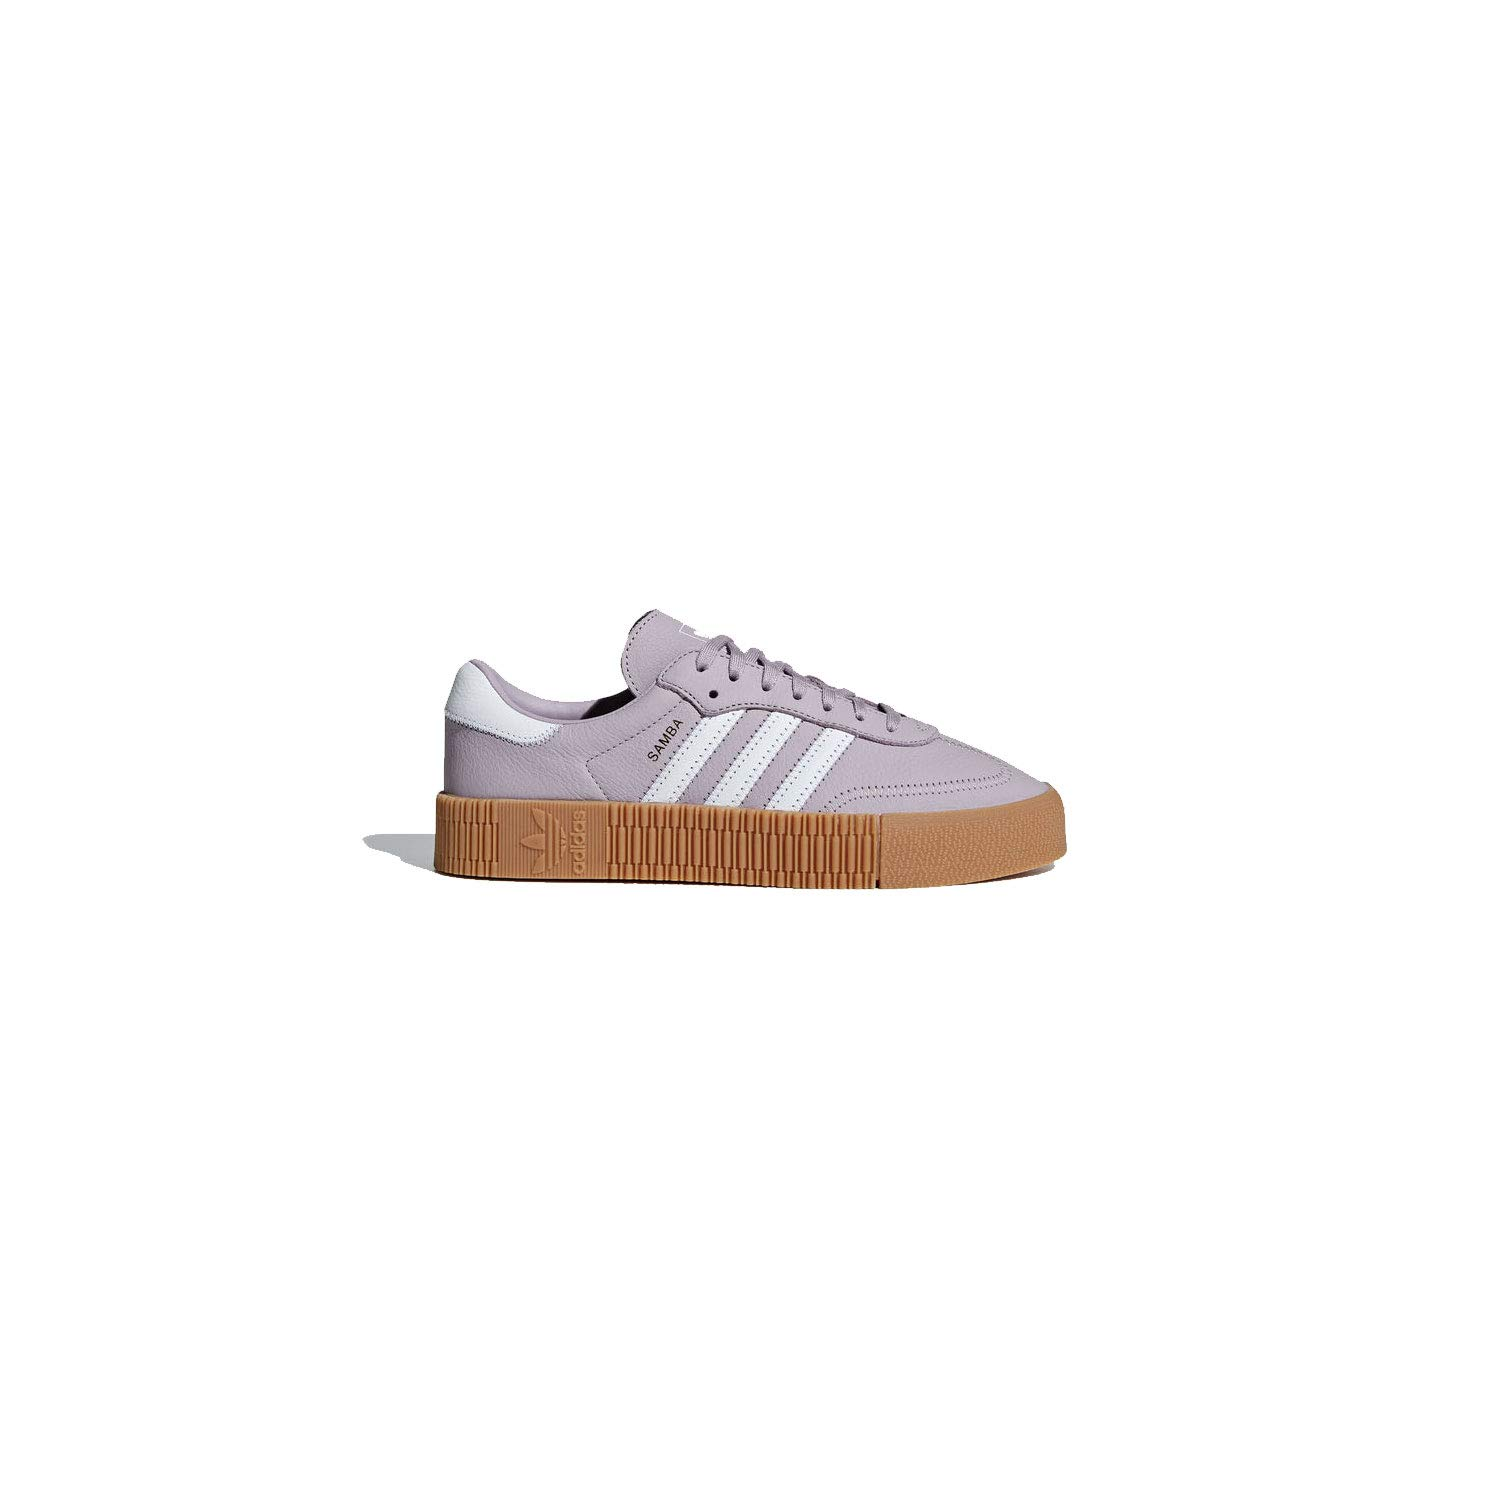 Best Price Of Adidas Samba Rose Soccer Boots Womens In India